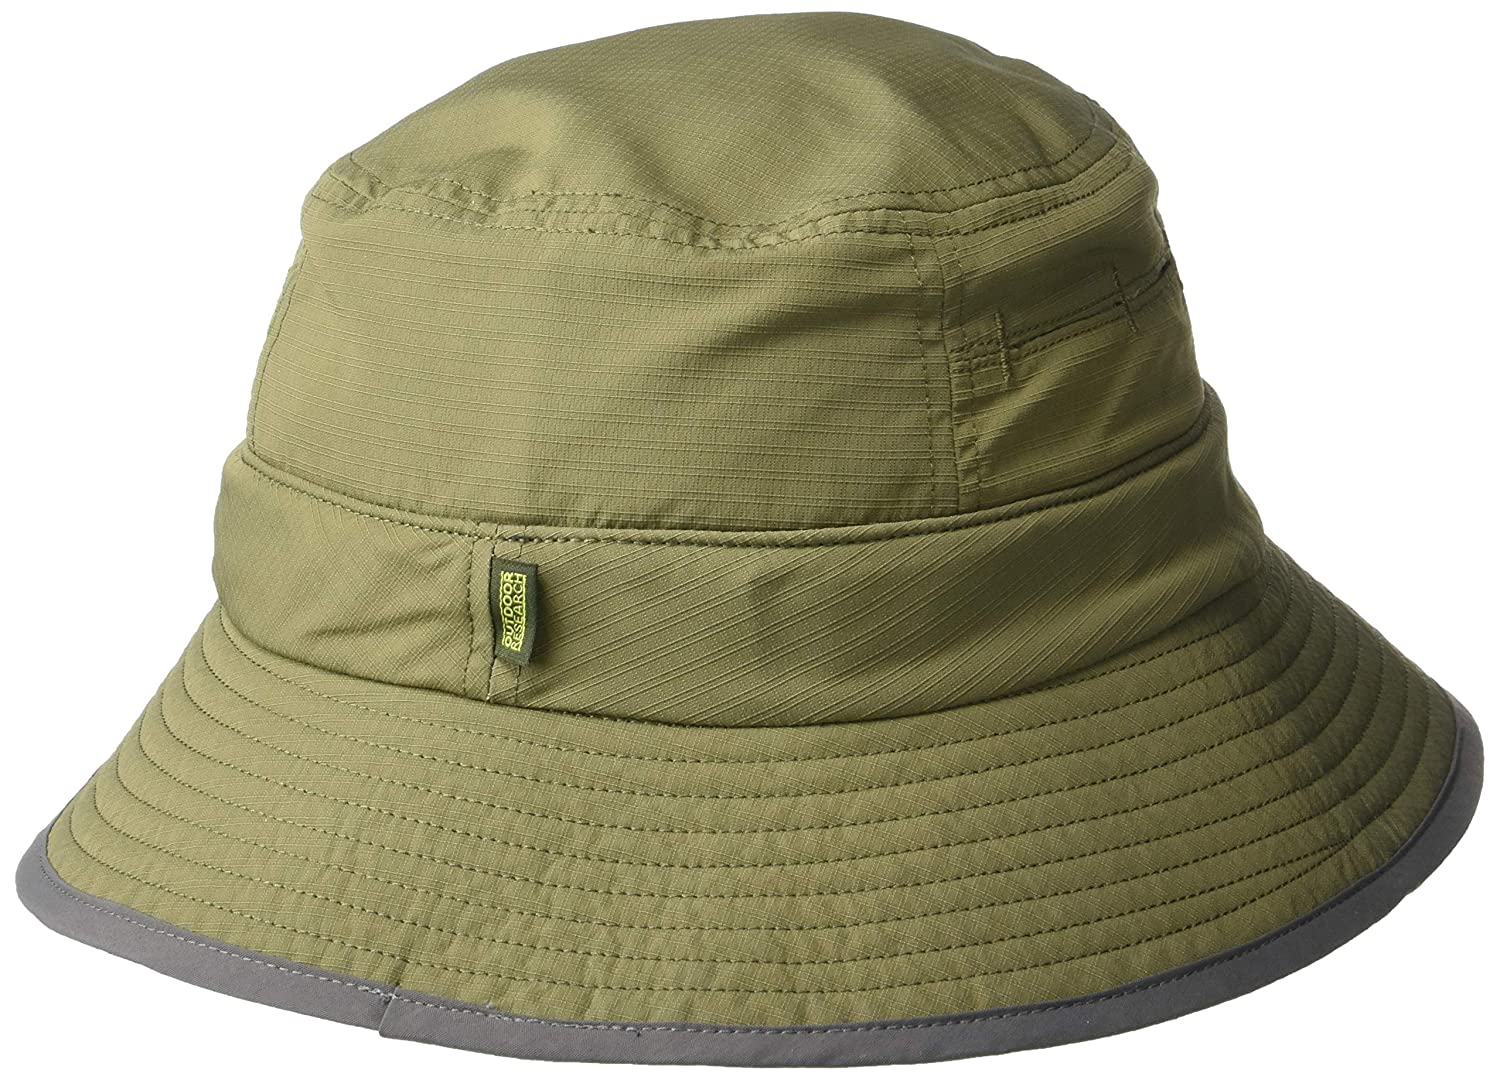 eb34be5a4a0 Amazon.com  Outdoor Research Sombriolet Sun Hat  Sports   Outdoors